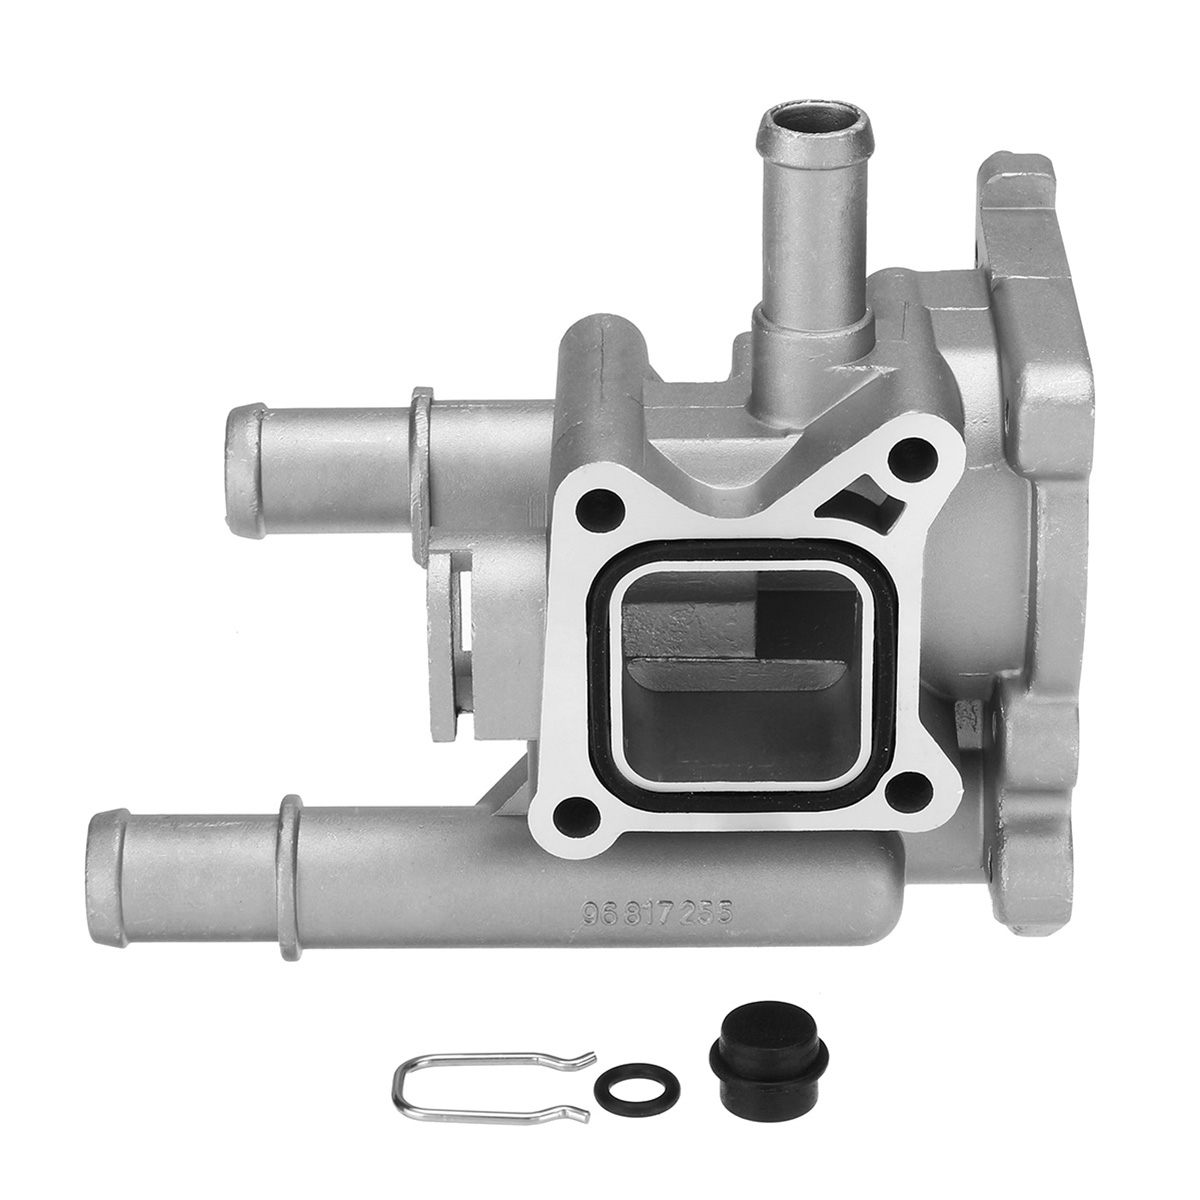 Aluminum Engine Coolant Thermostat With Housing For Chevrolet Cruze Aveo Vauxhall Opel Astra Zafira